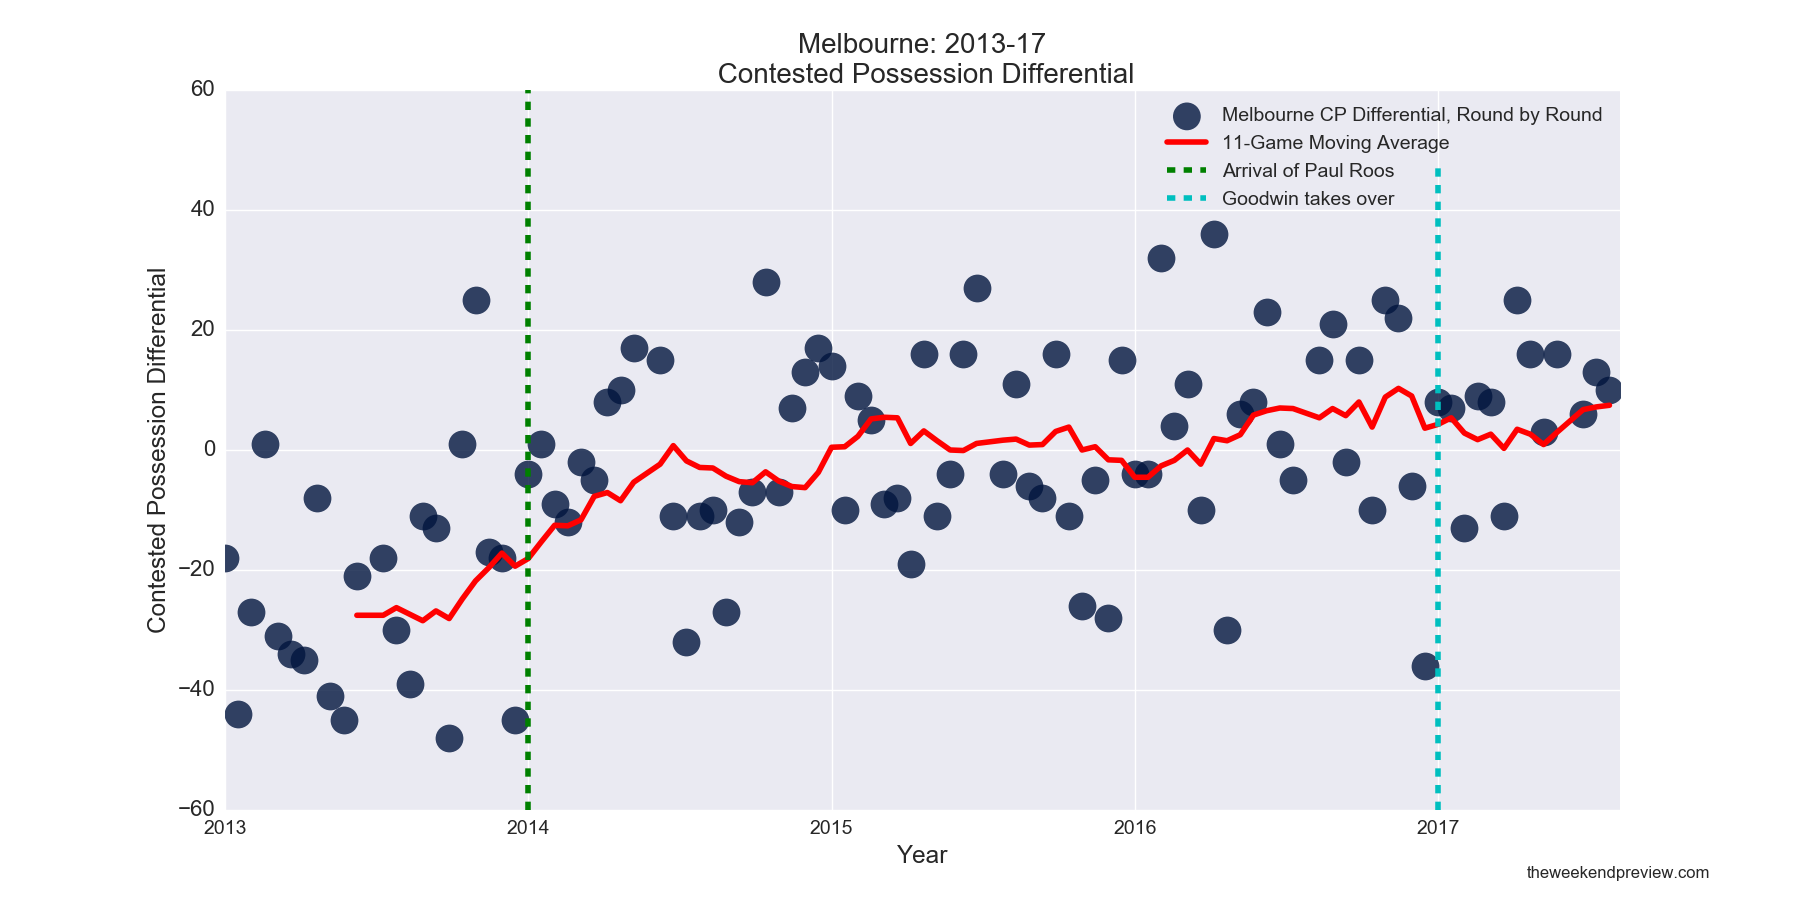 Figure-2: Melbourne Contested Possession Differential in Paul Roos Era